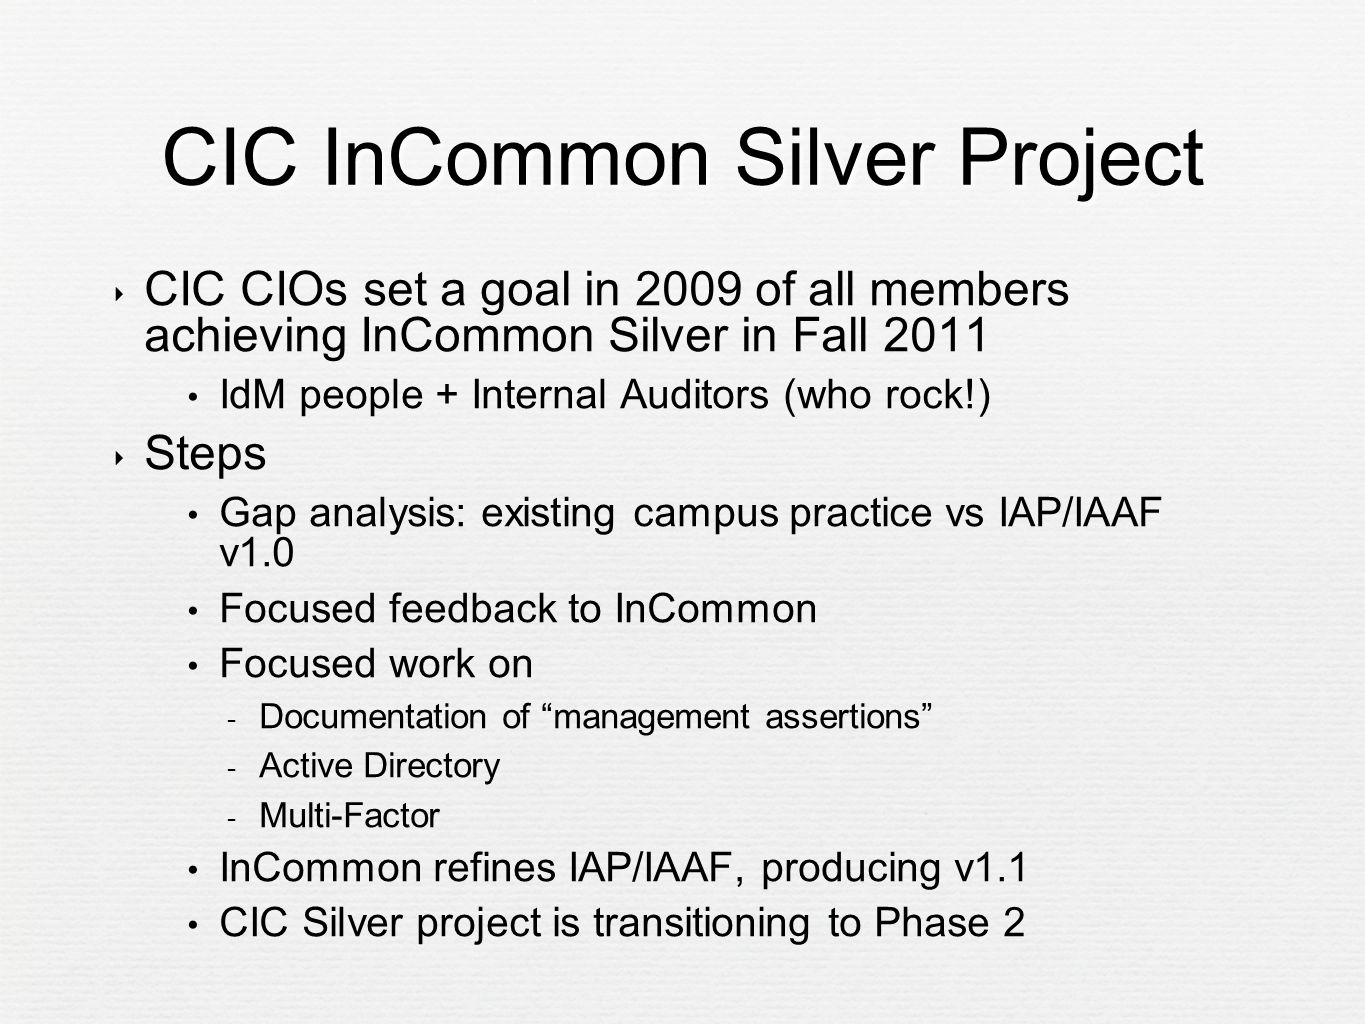 CIC InCommon Silver Project ‣ CIC CIOs set a goal in 2009 of all members achieving InCommon Silver in Fall 2011 IdM people + Internal Auditors (who rock!) ‣ Steps Gap analysis: existing campus practice vs IAP/IAAF v1.0 Focused feedback to InCommon Focused work on  Documentation of management assertions  Active Directory  Multi-Factor InCommon refines IAP/IAAF, producing v1.1 CIC Silver project is transitioning to Phase 2